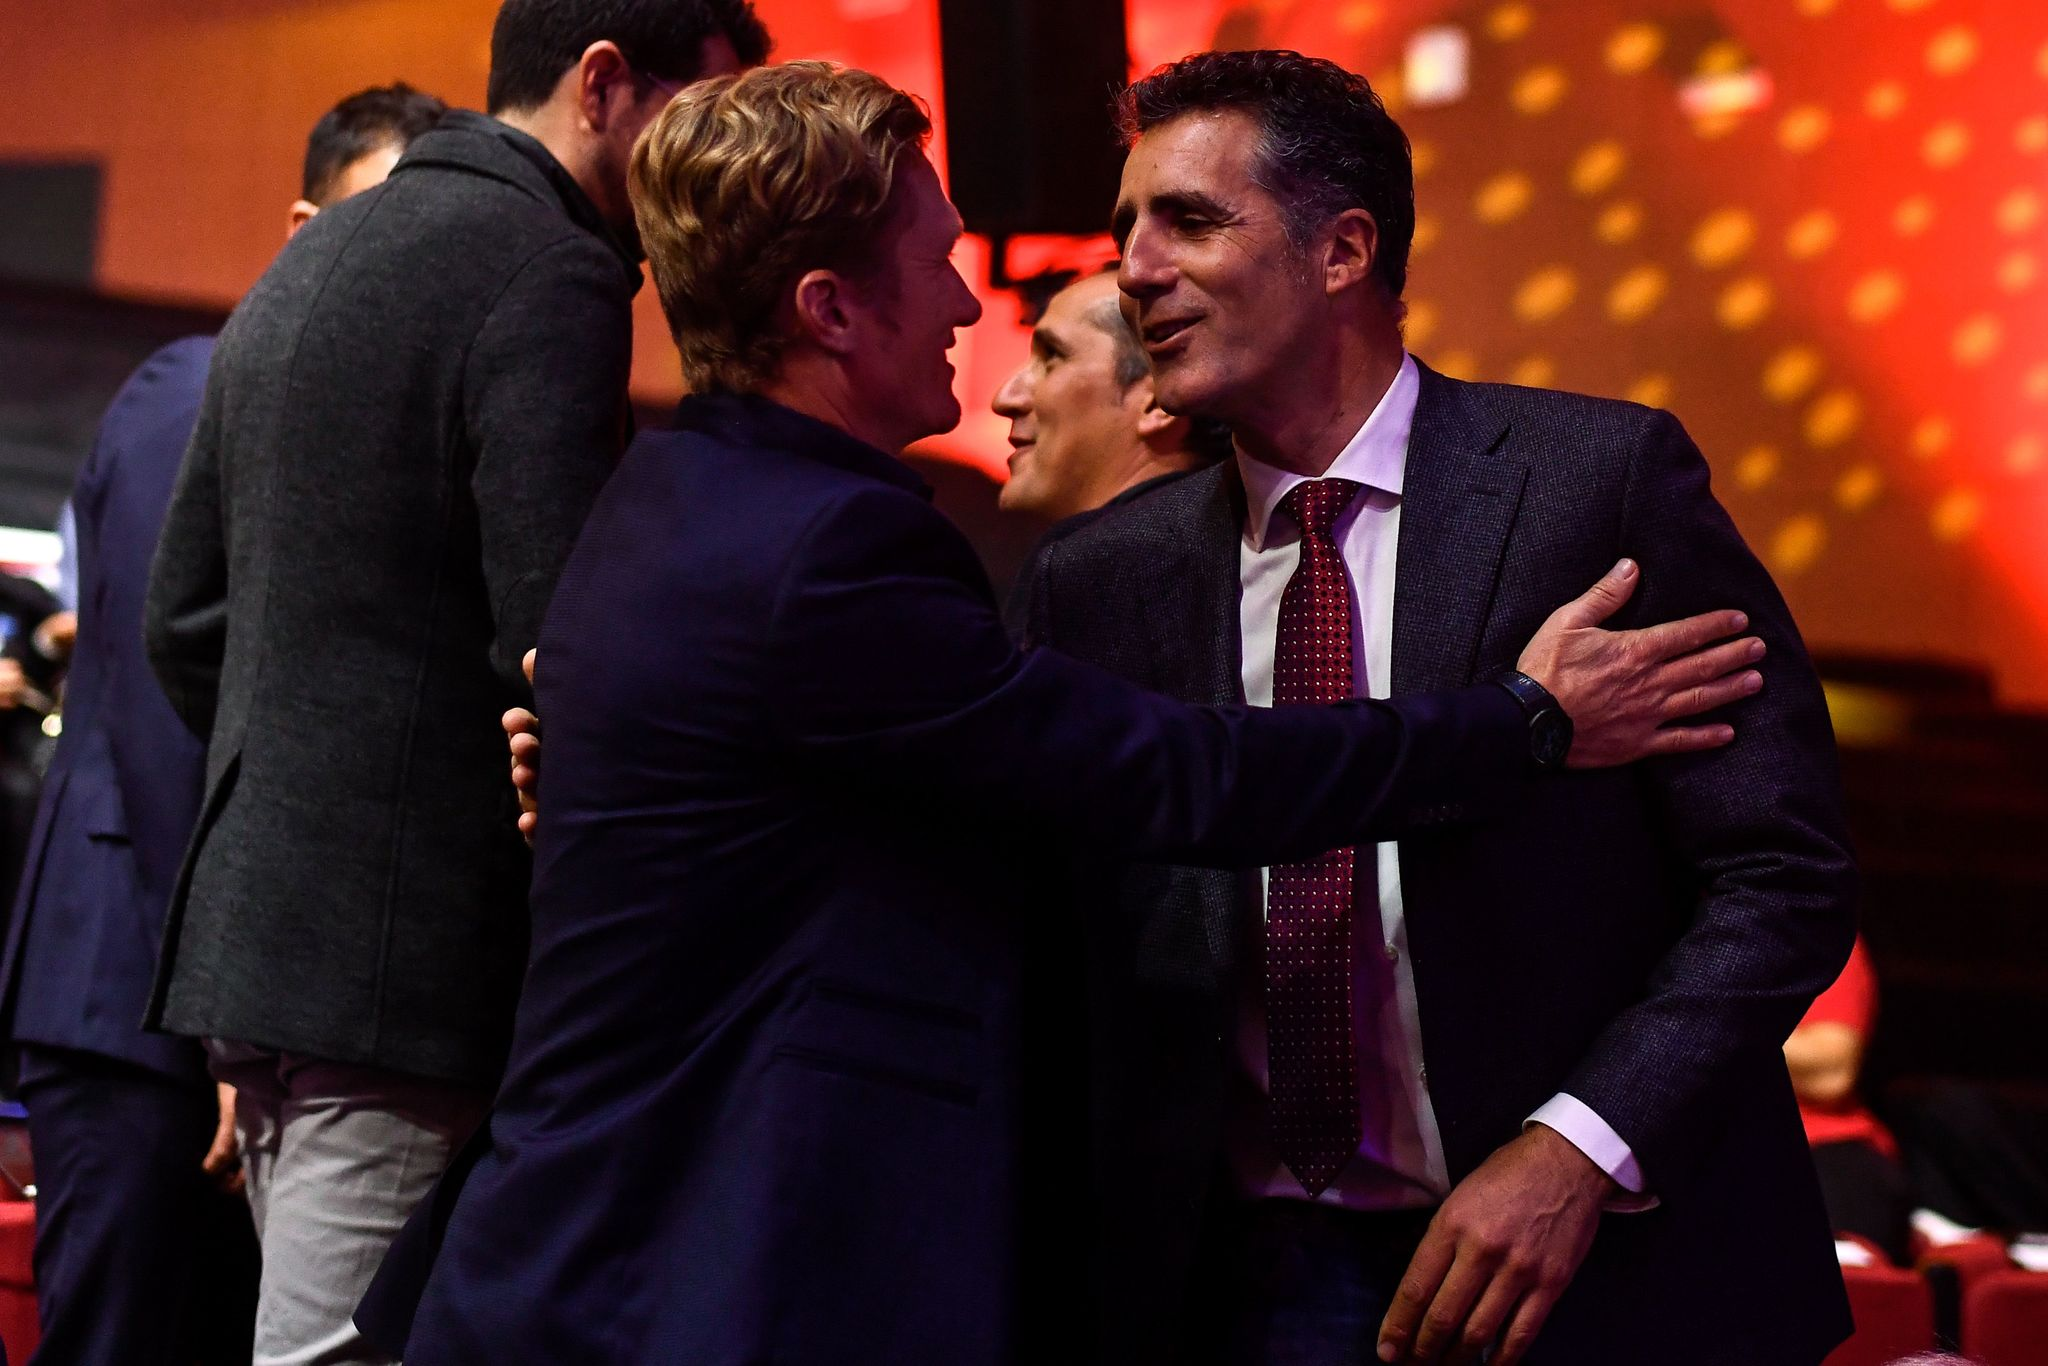 Former Spanish cyclist Miguel <HIT>Indurain</HIT> (R) attends the presentation of the 75th La Vuelta cycling tour of Spain 2020, in Madrid on December 17, 2019. (Photo by OSCAR DEL POZO / AFP)